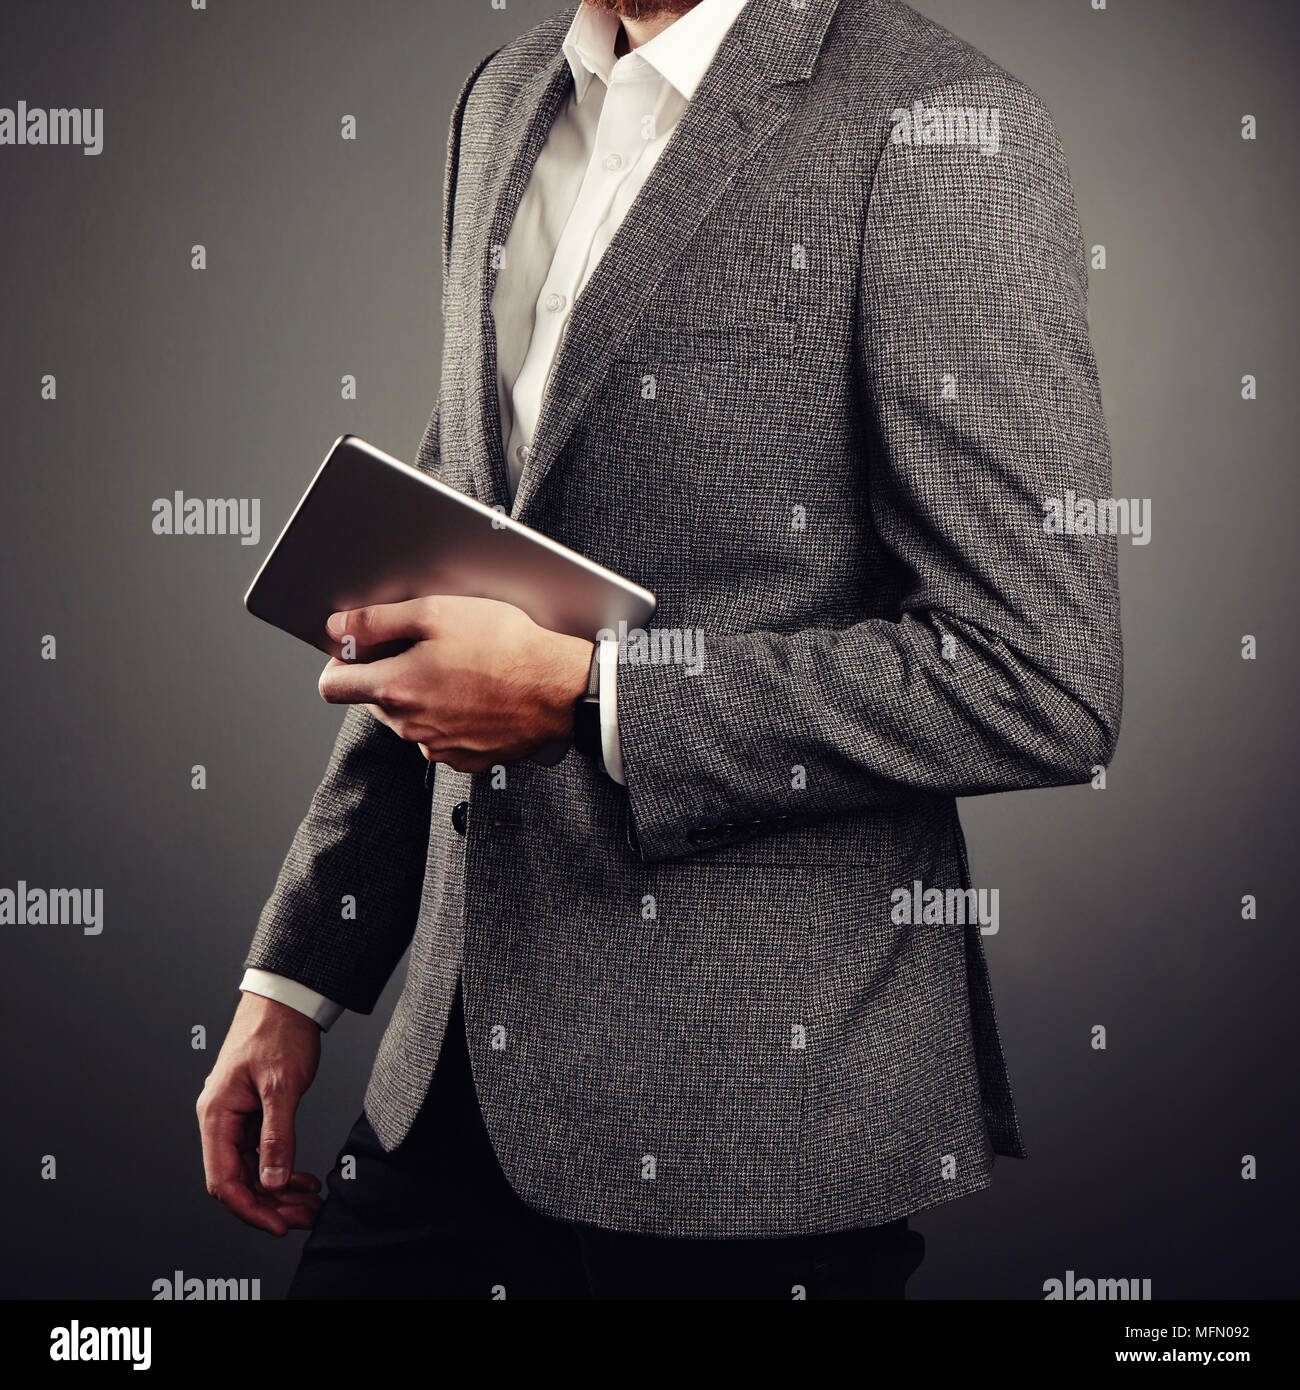 Handsome Young Man in Business Suit. Casual style and Electronic Gadgets. Smart Watches and Digital Tablet - Stock Image